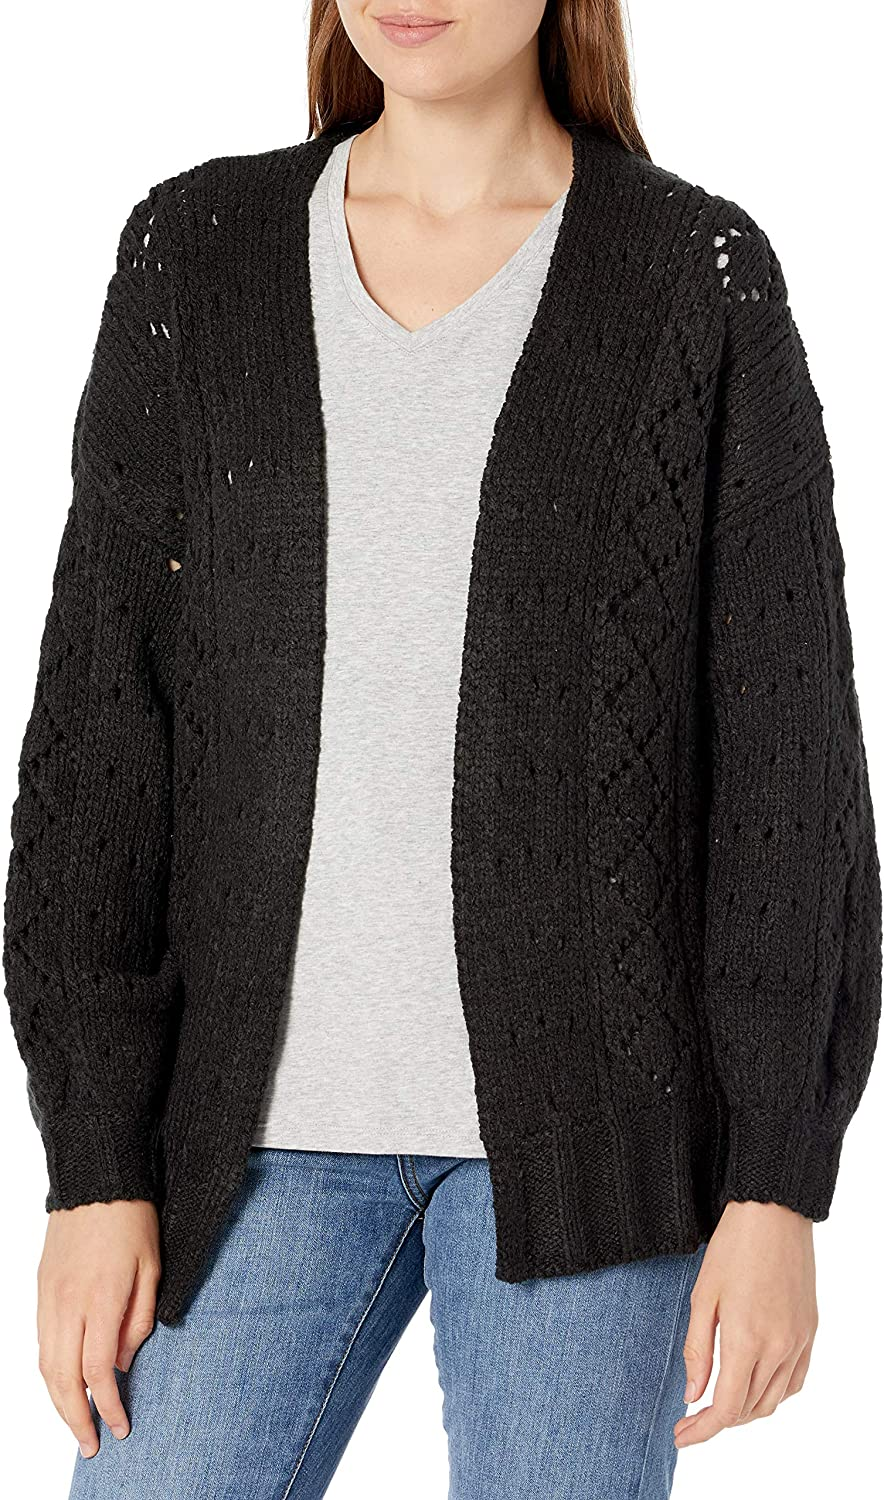 Billabong Women's Blissed Out Sweater